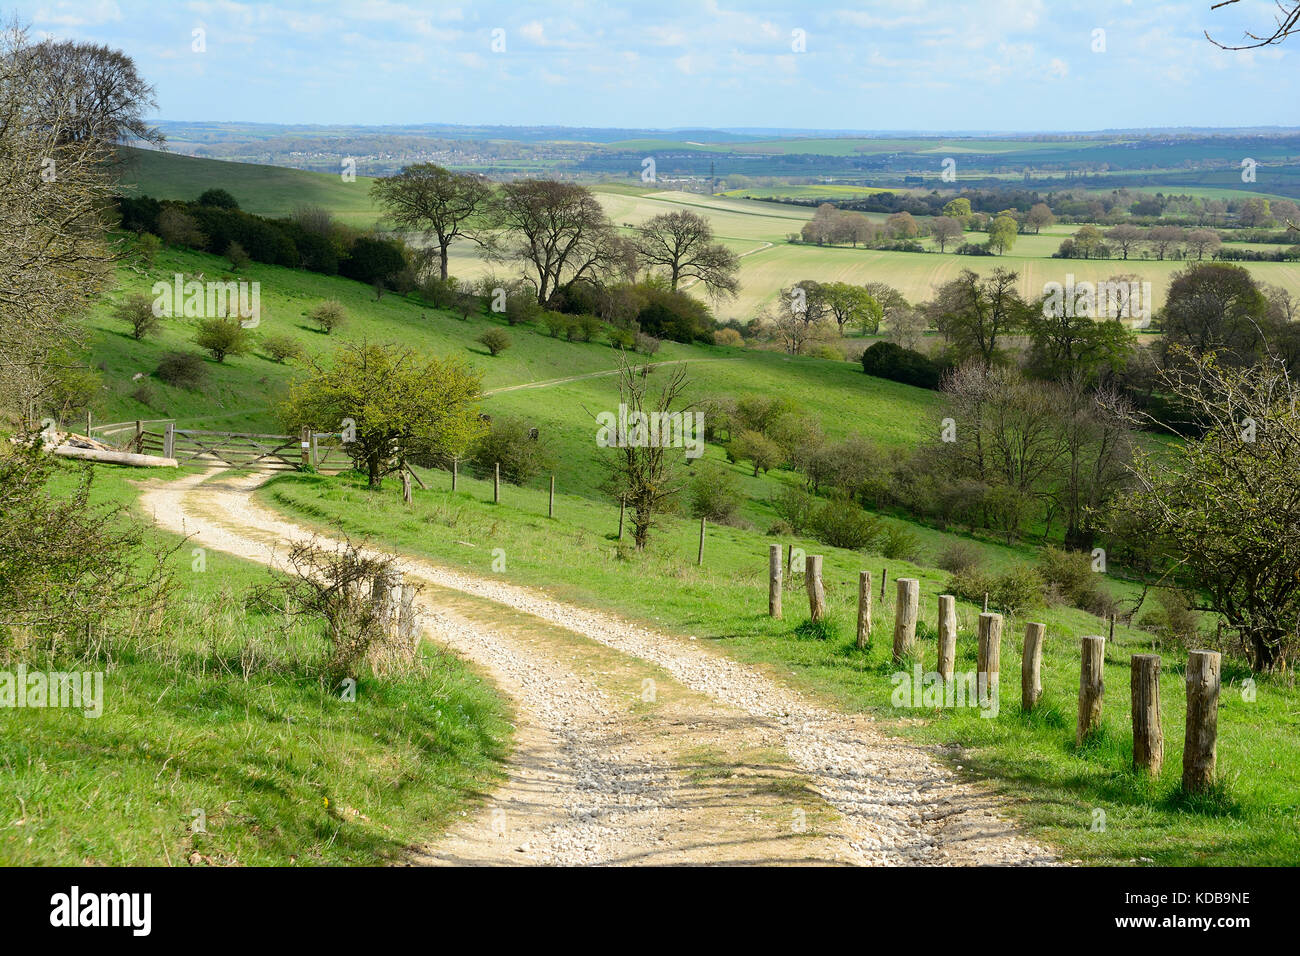 Winding rural track in the Chiltern Hills heading into Bedfordshire, England - Stock Image